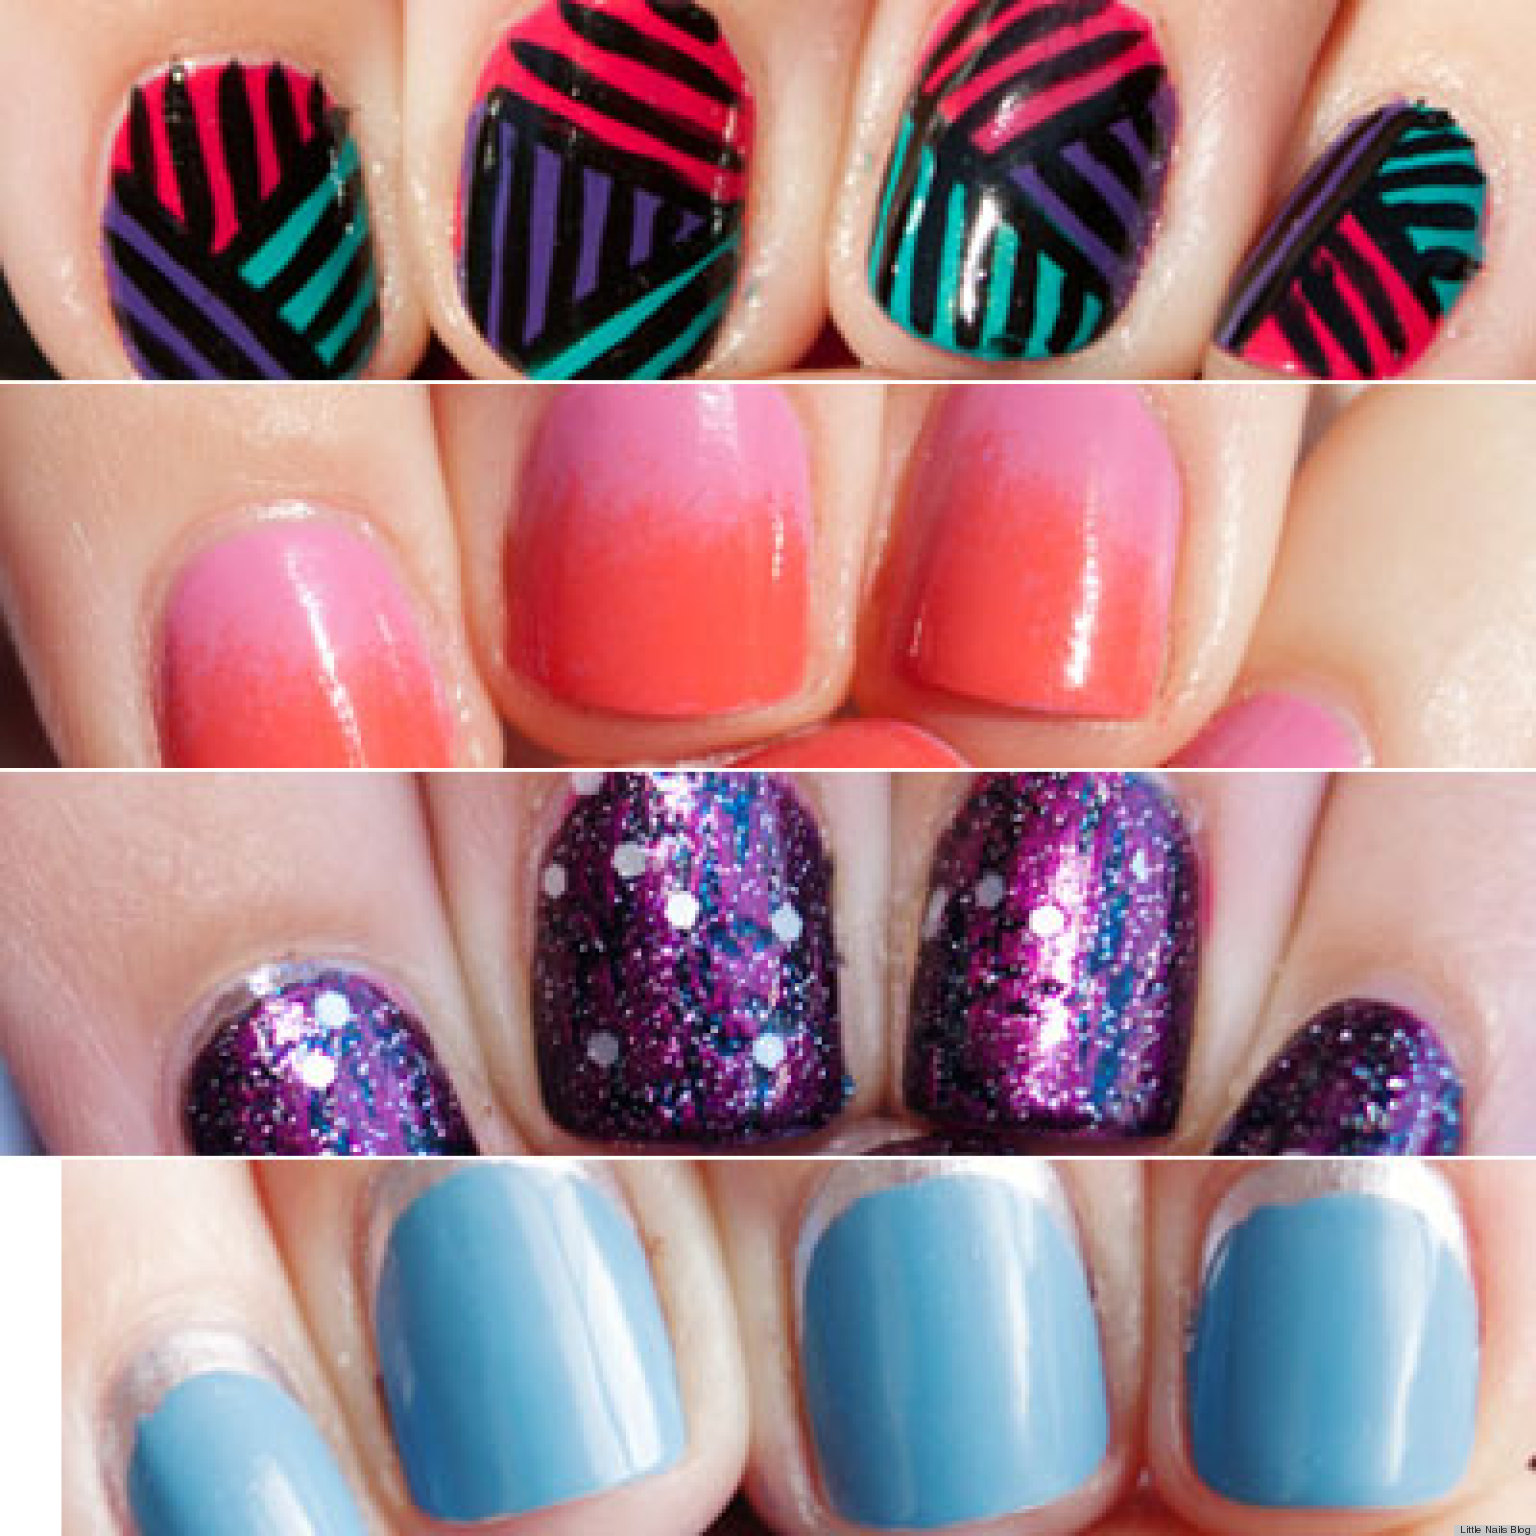 Nail designs 2014 tumblr step by step for short nails with do it yourself nail designs nail designs 2014 tumblr step by step for short nails with rhinestones with bows tumblr acrylic summber ideas solutioingenieria Gallery